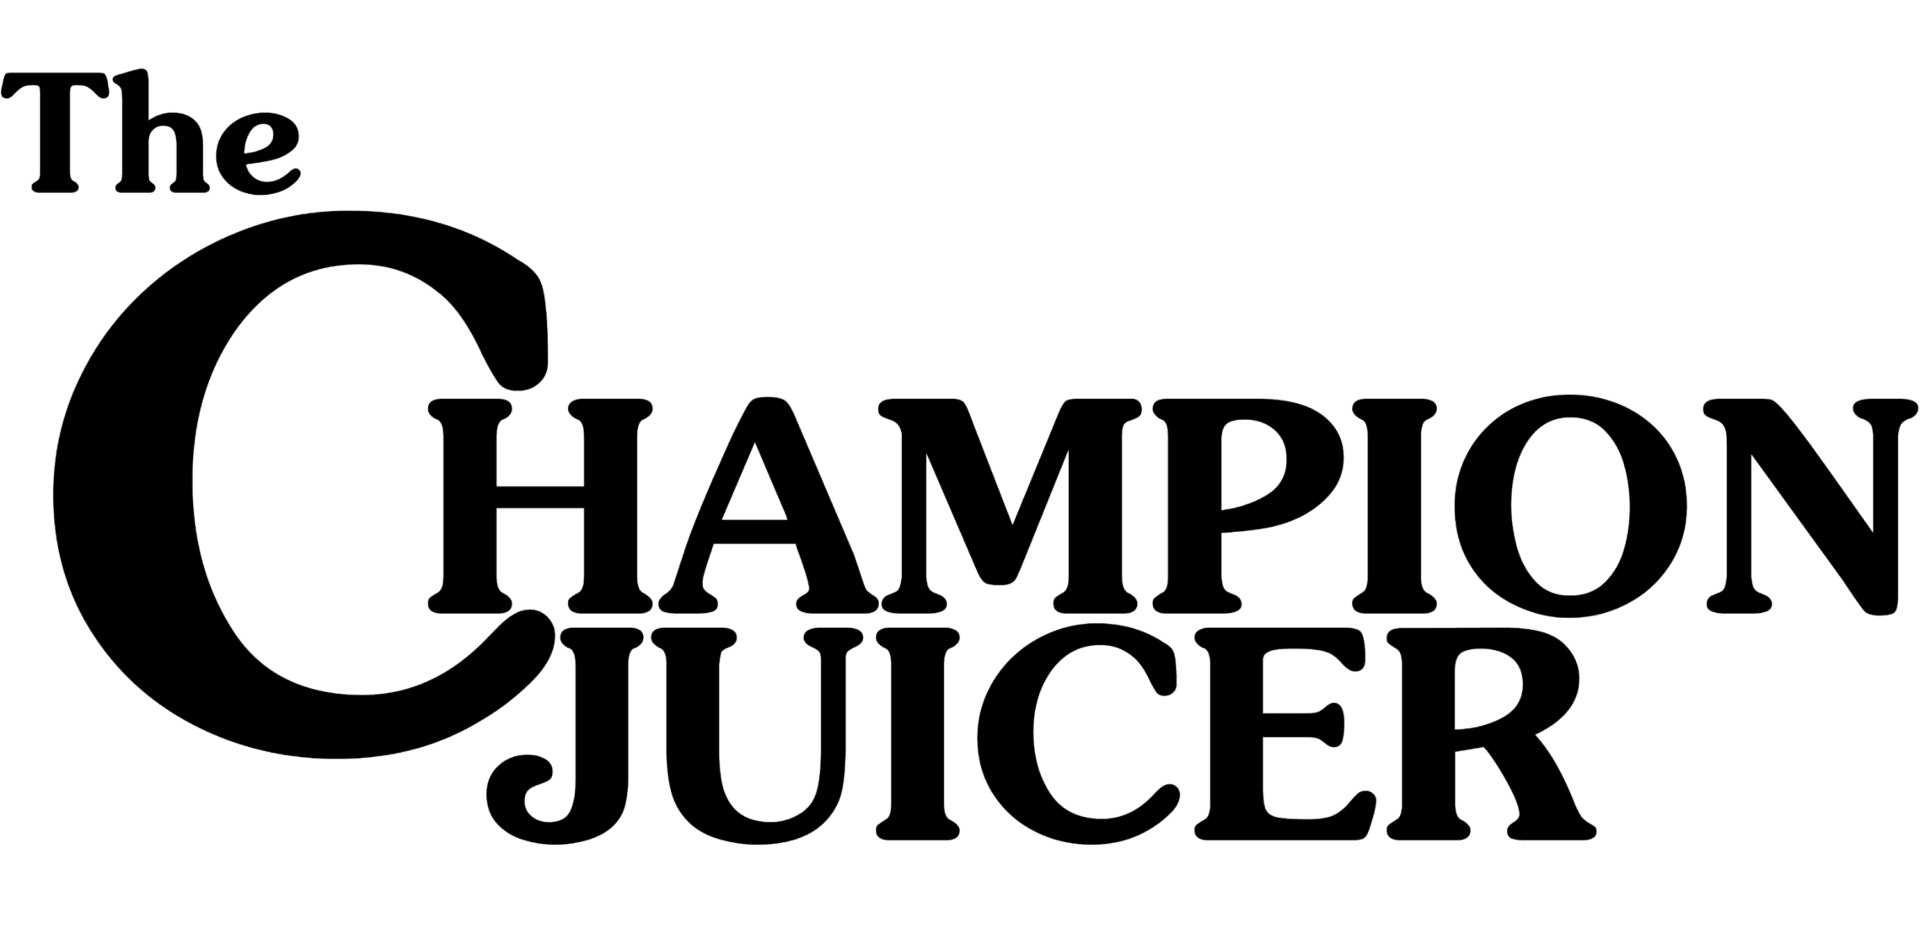 Plastaket Mfg. Co. Inc., home of the Champion Juicer, proud to be serving the juicing industry for over 60 years.<br><br><strong>https://championjuicer.com/</strong>